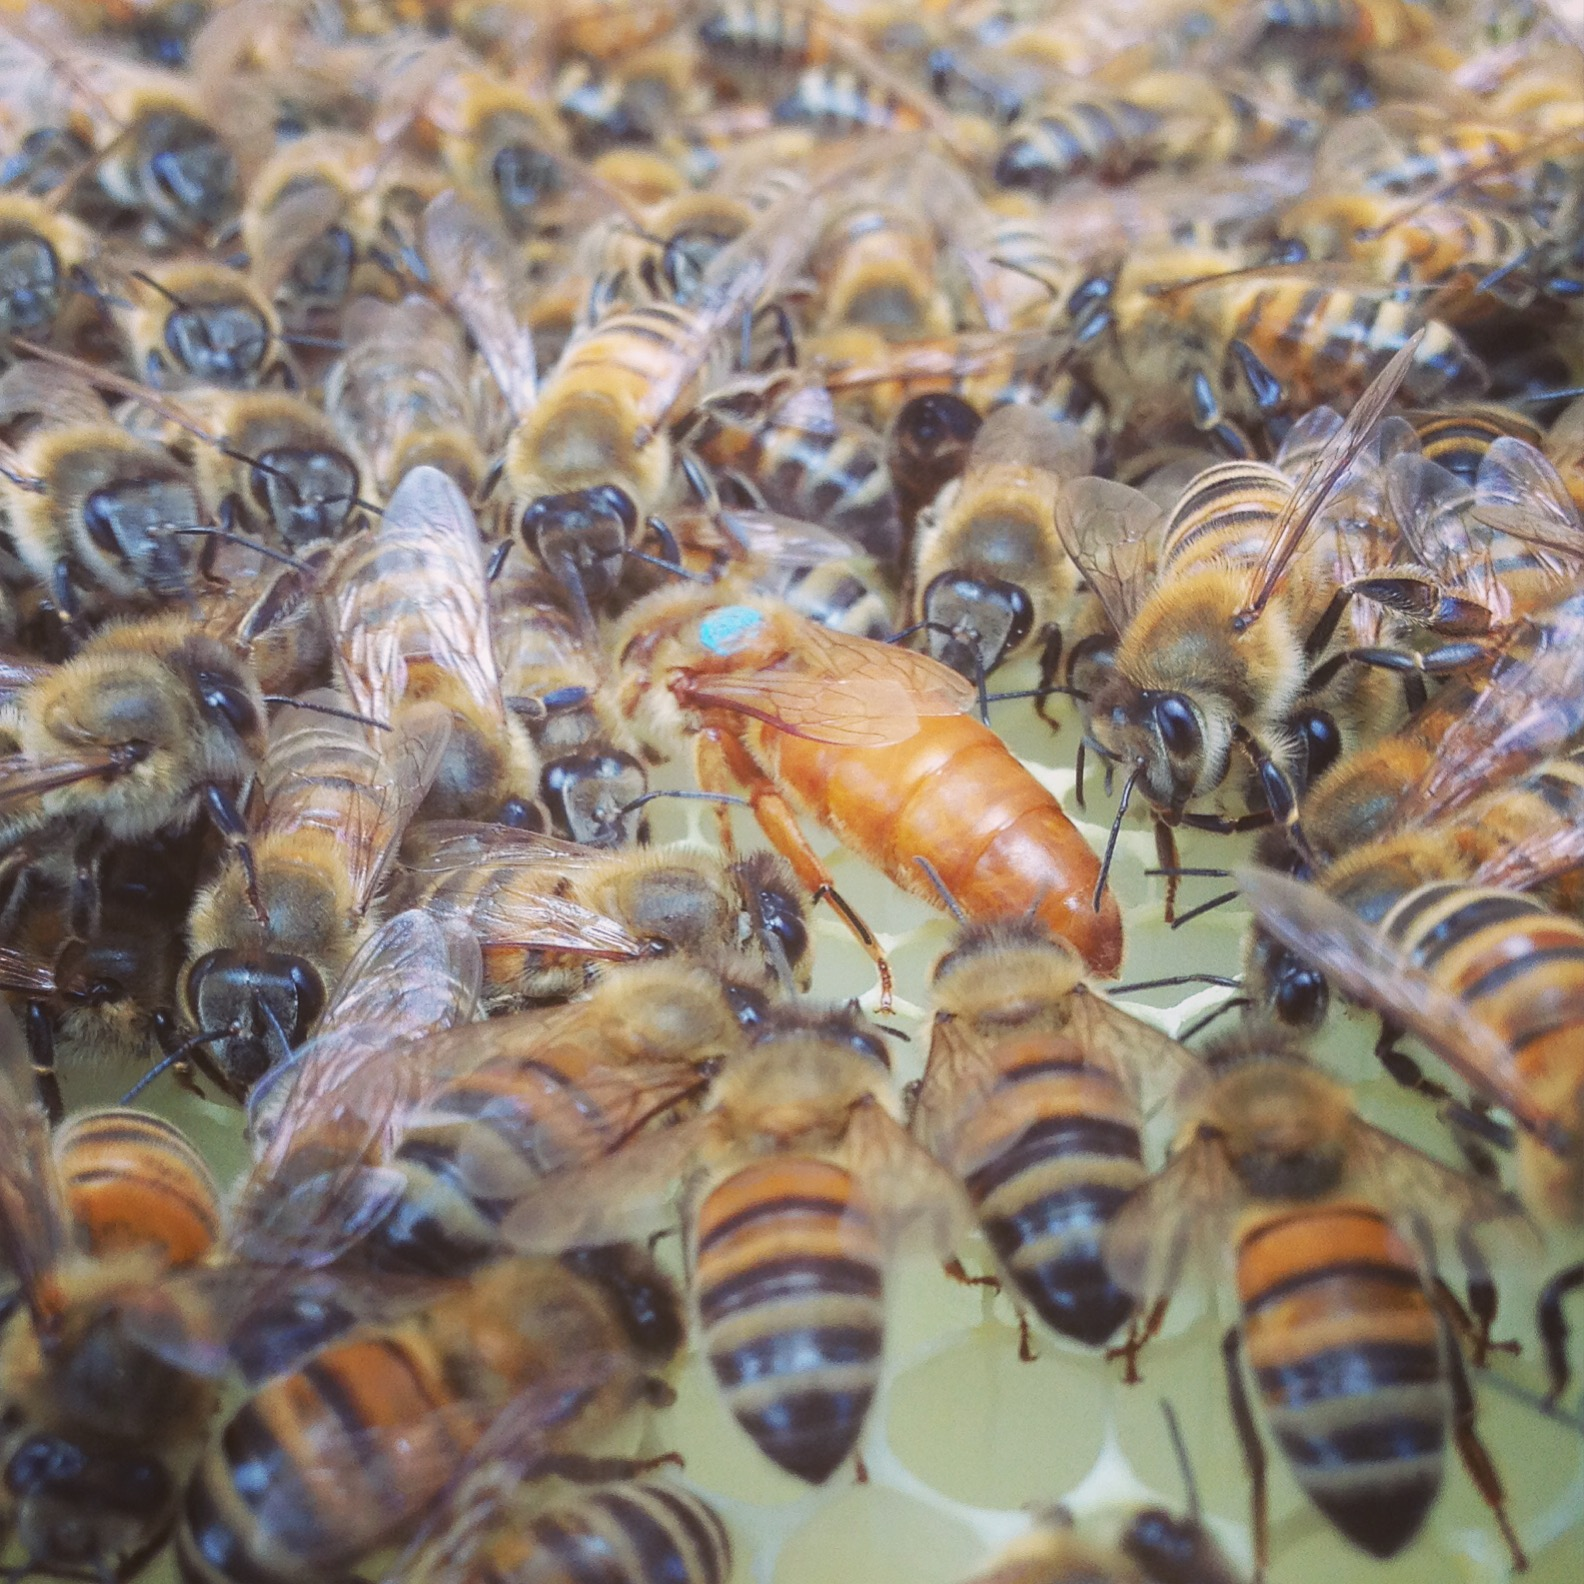 2018 Second Edition Beekeeping Raising Honeybees Without Chemicals